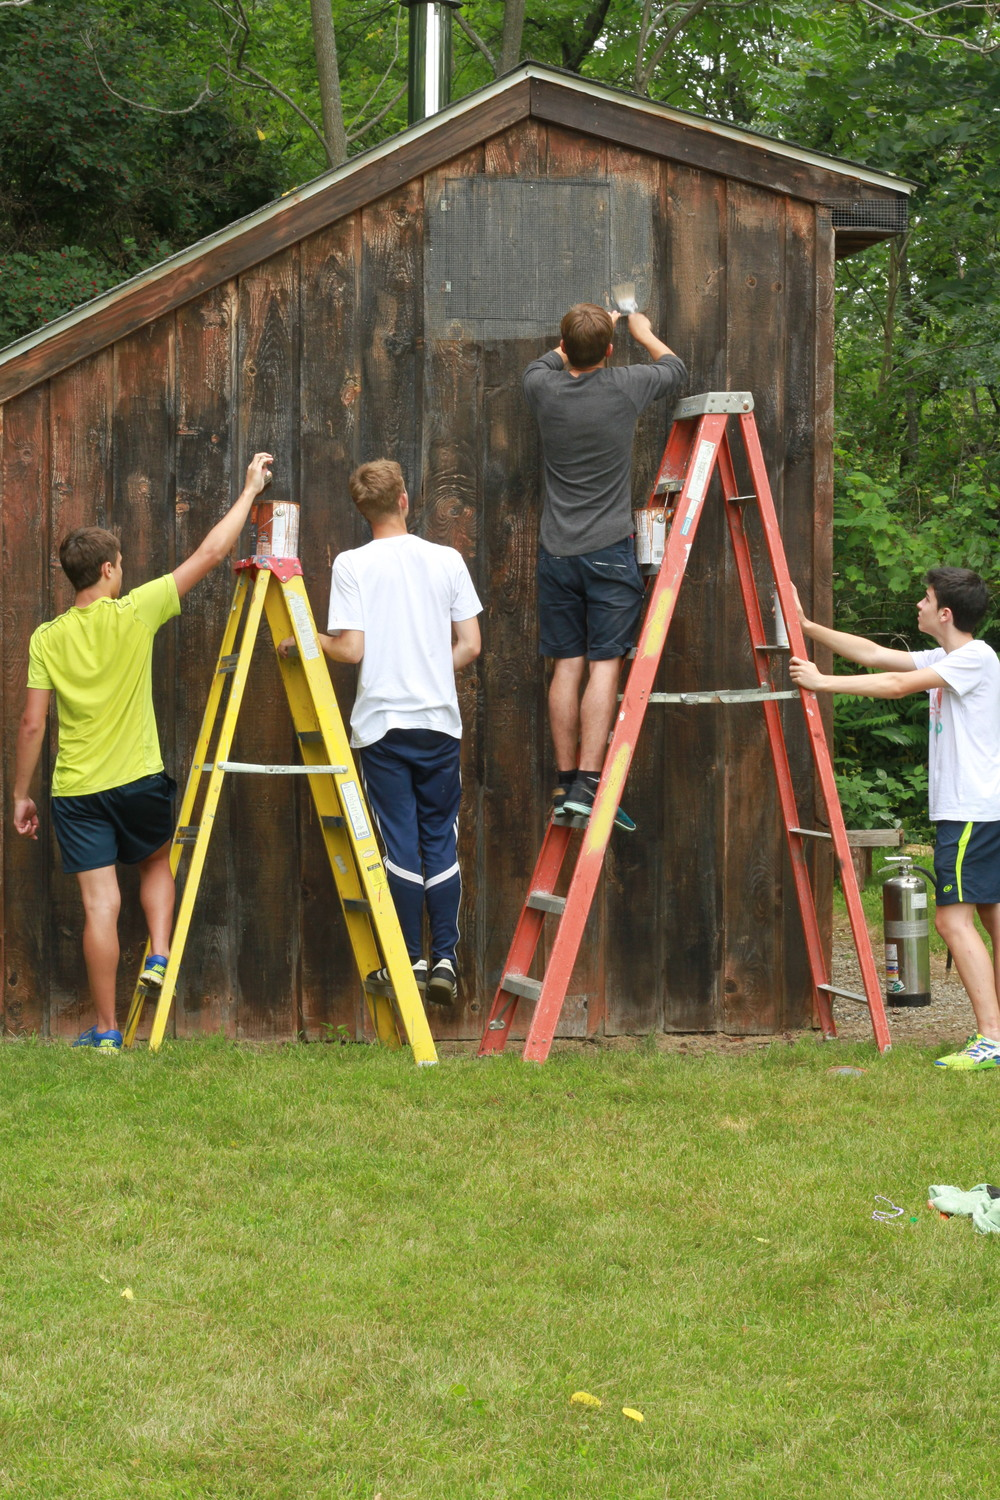 Campers fixing up the on-site Finnish sauna.